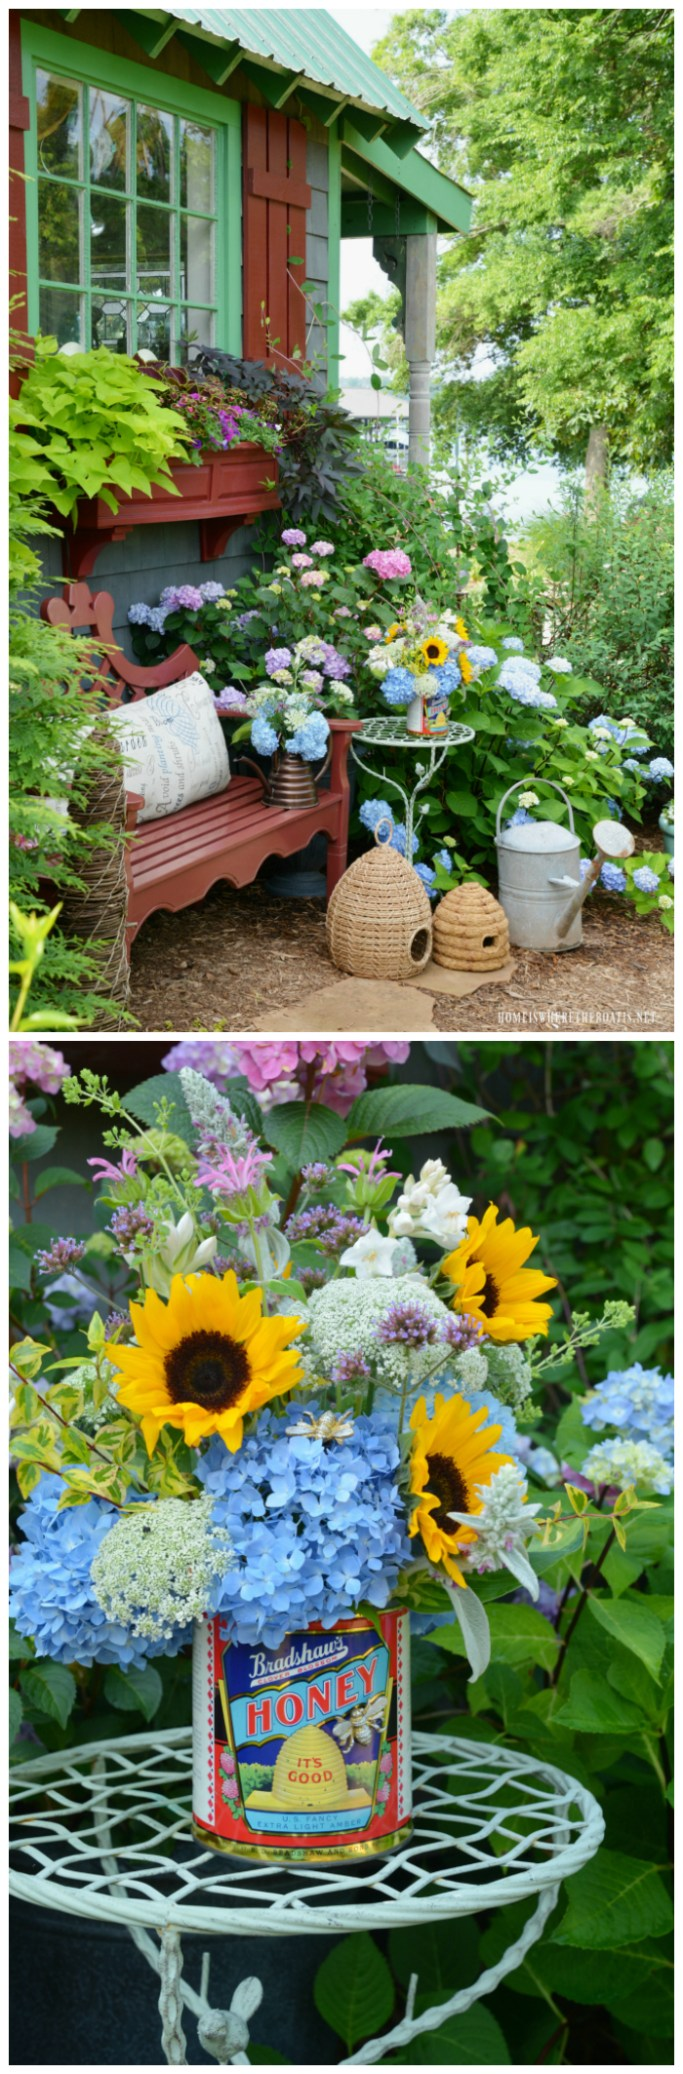 Garden flower arrangement using a vintage honey can as a vase | ©homeiswheretheboatis.net #garden #flowers #arrangement #upcycle #bees #gardenshed